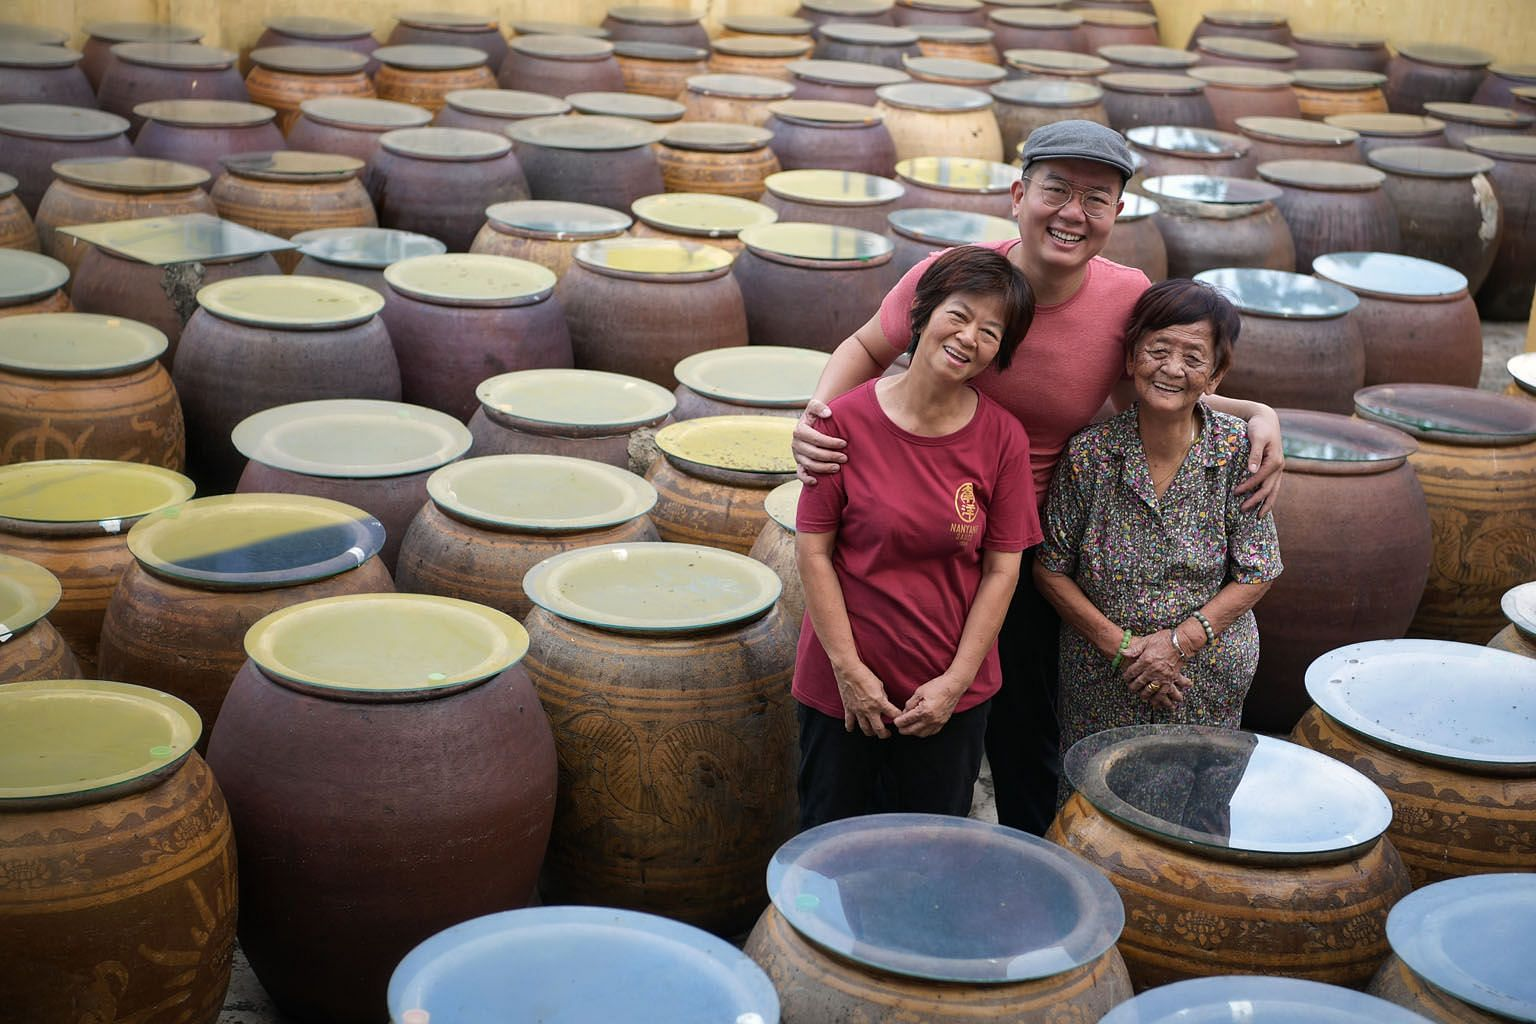 From left: Madam Tan Poh Choo, 63, a sauce master; Mr Ken Koh, 36; and Madam Ng Soh Lian, 94. The family-run Nanyang Sauce Factory, which has roots dating back to 1959, continues to pursue and uphold authentic soya sauce making traditions. Madam Ng,